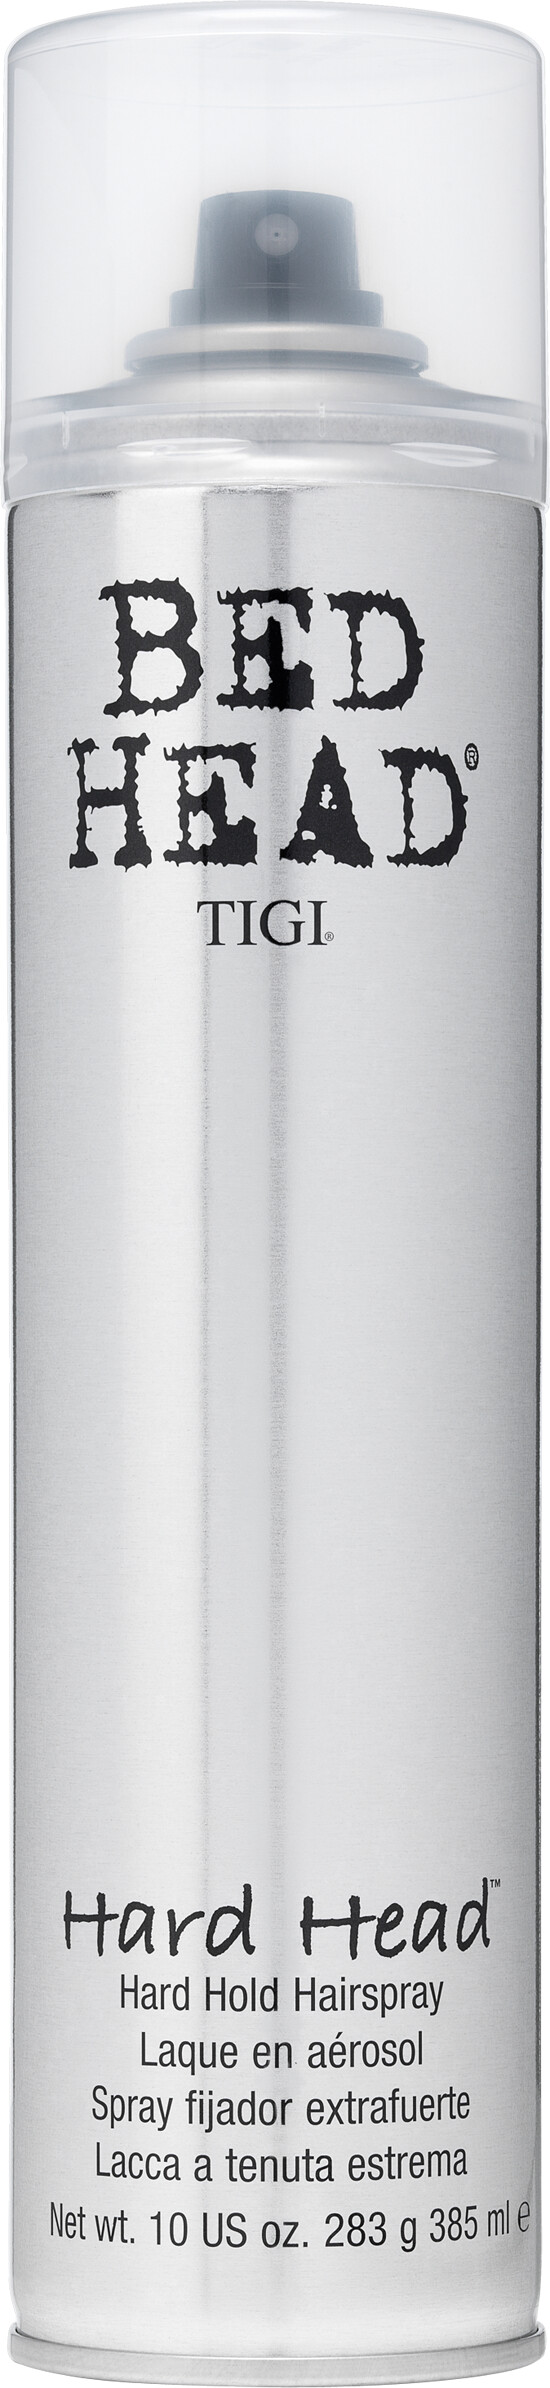 Tigi Bed Head Hard Hairspray Best Breeding 40ml 385ml